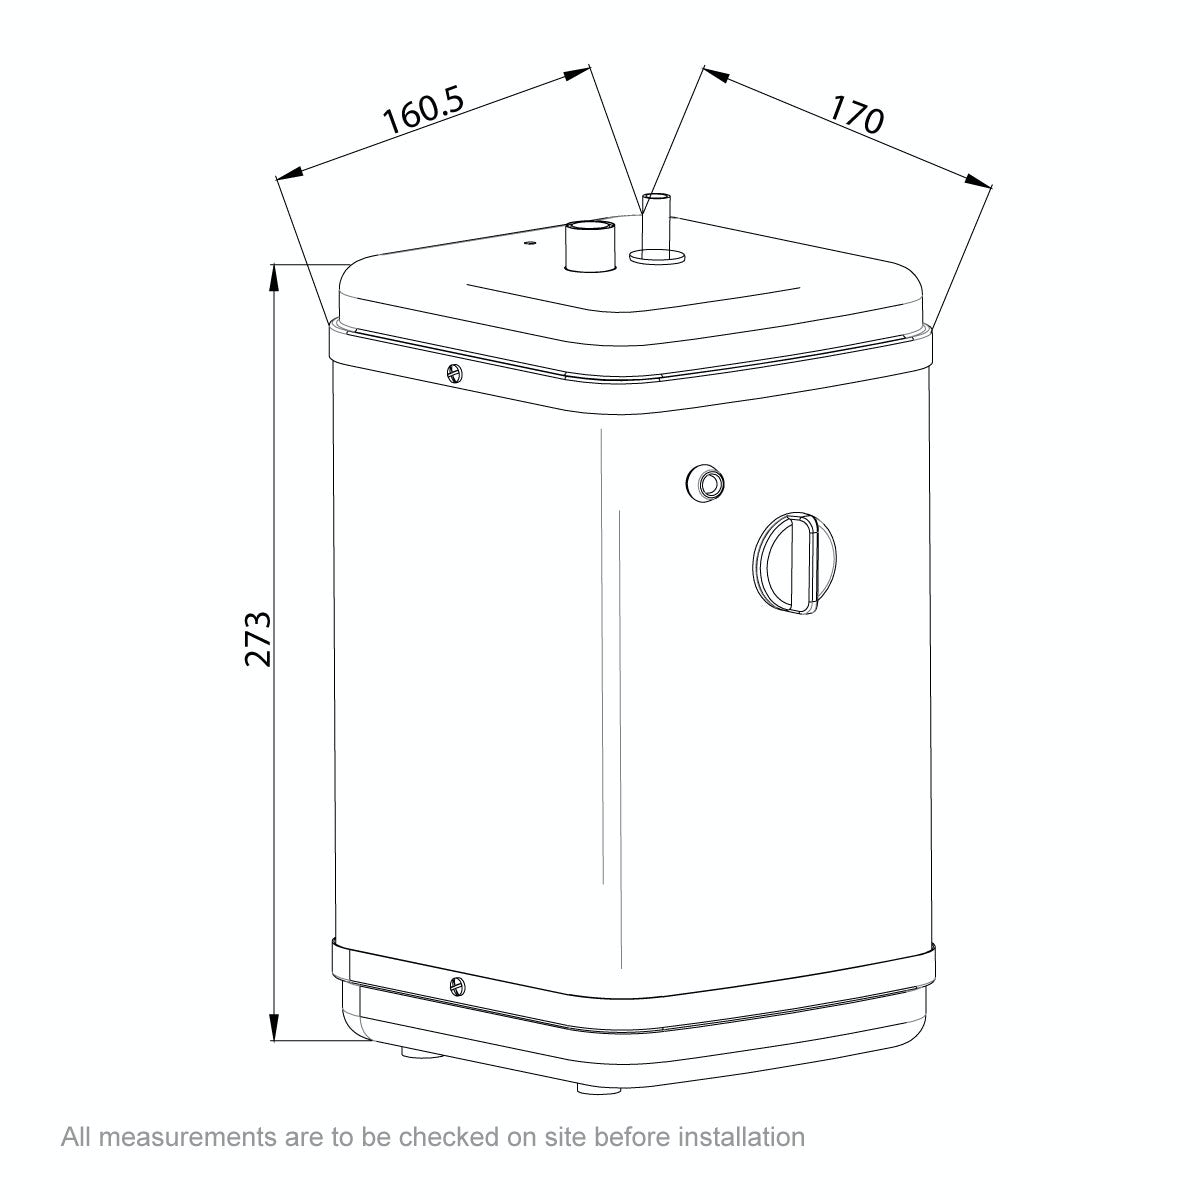 Dimensions for Ready Hot One way boiling water tap with manual boiler